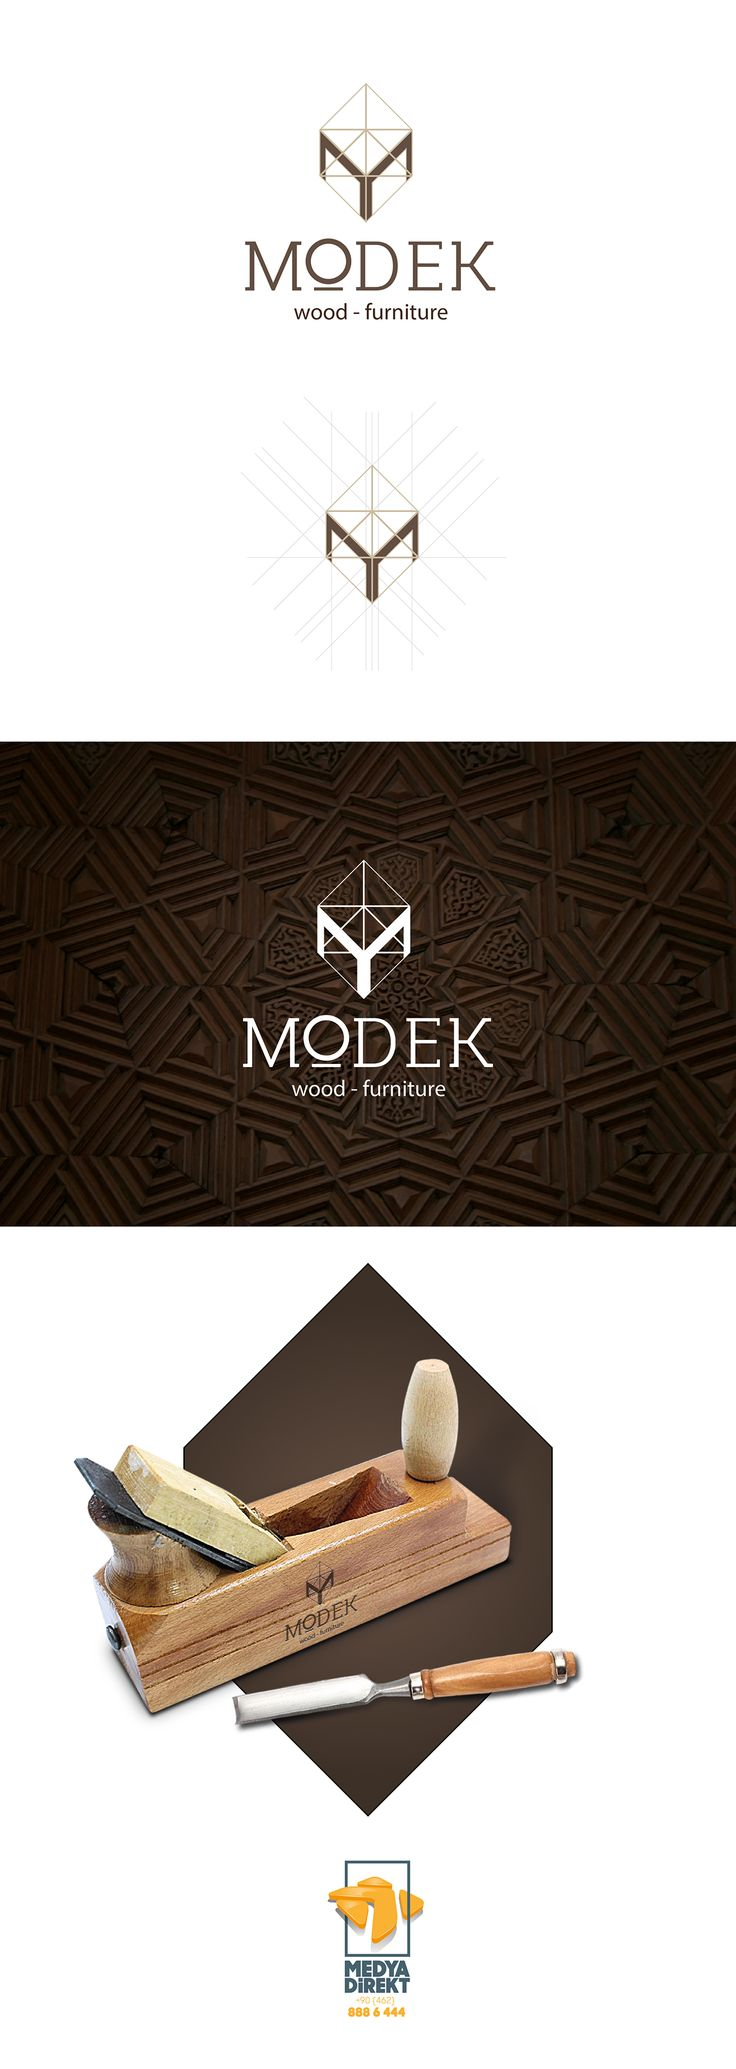 Modek - wood & furniture Logo Design on Behance                                                                                                                                                                                 More